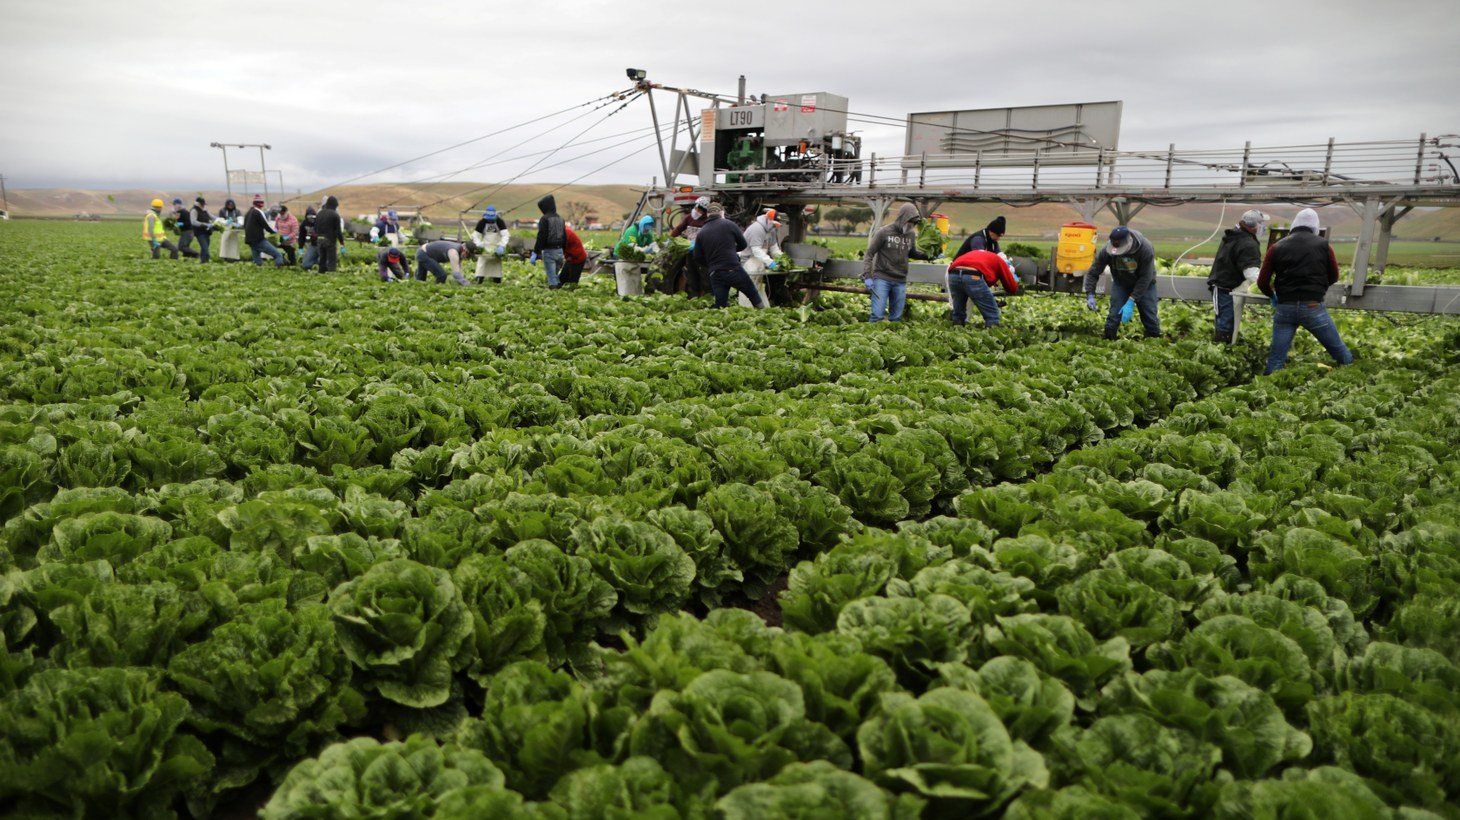 Migrant farmworkers with H2A visas harvest romaine lettuce in King City, California. Ninety-three percent of California's agricultural laborers are Latino, and coronavirus cases are mounting within the community.